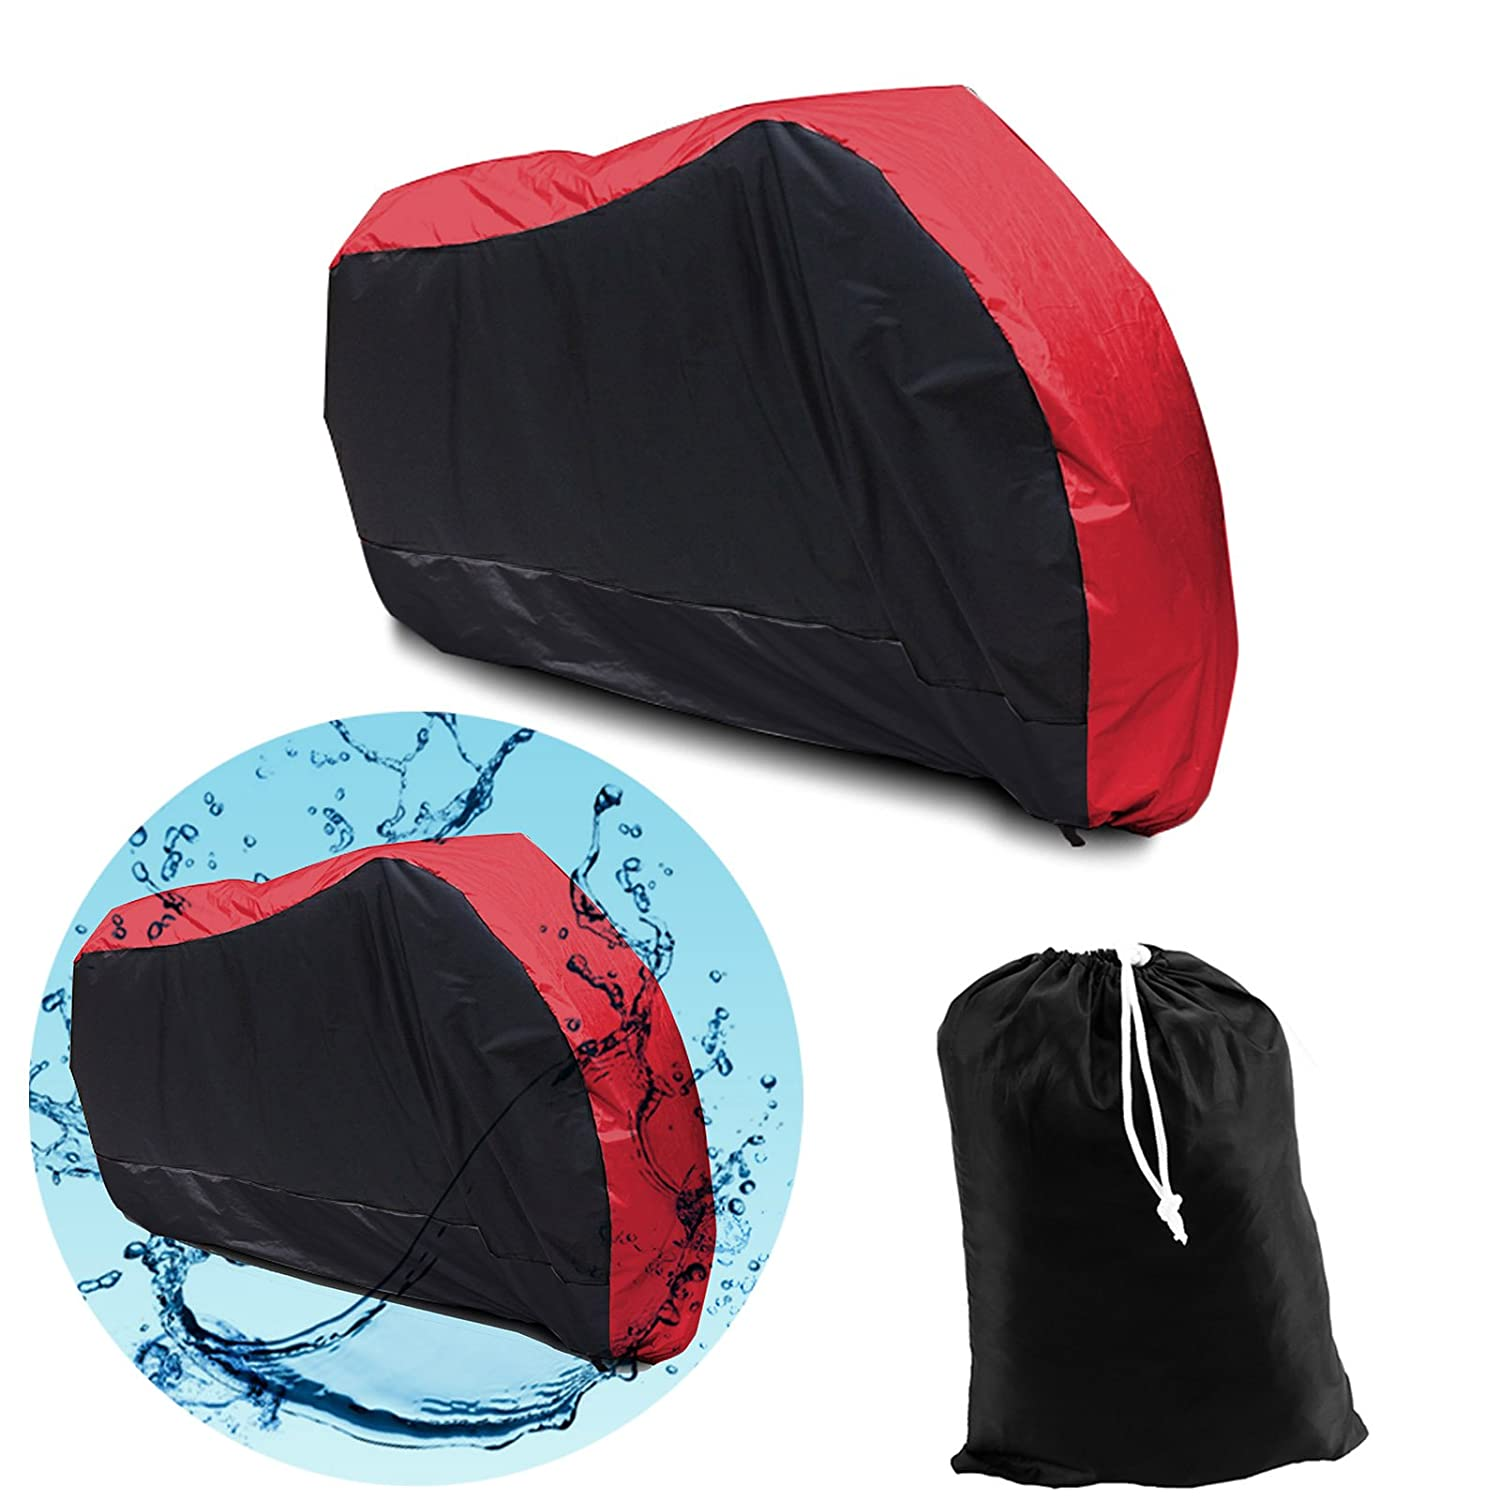 Black Red SurePromise Motorcycle Motorbike Waterproof Breathable Cover Outdoor Indoor Extra Large With Storage Bag 245 x 105 x 125 Centimeter